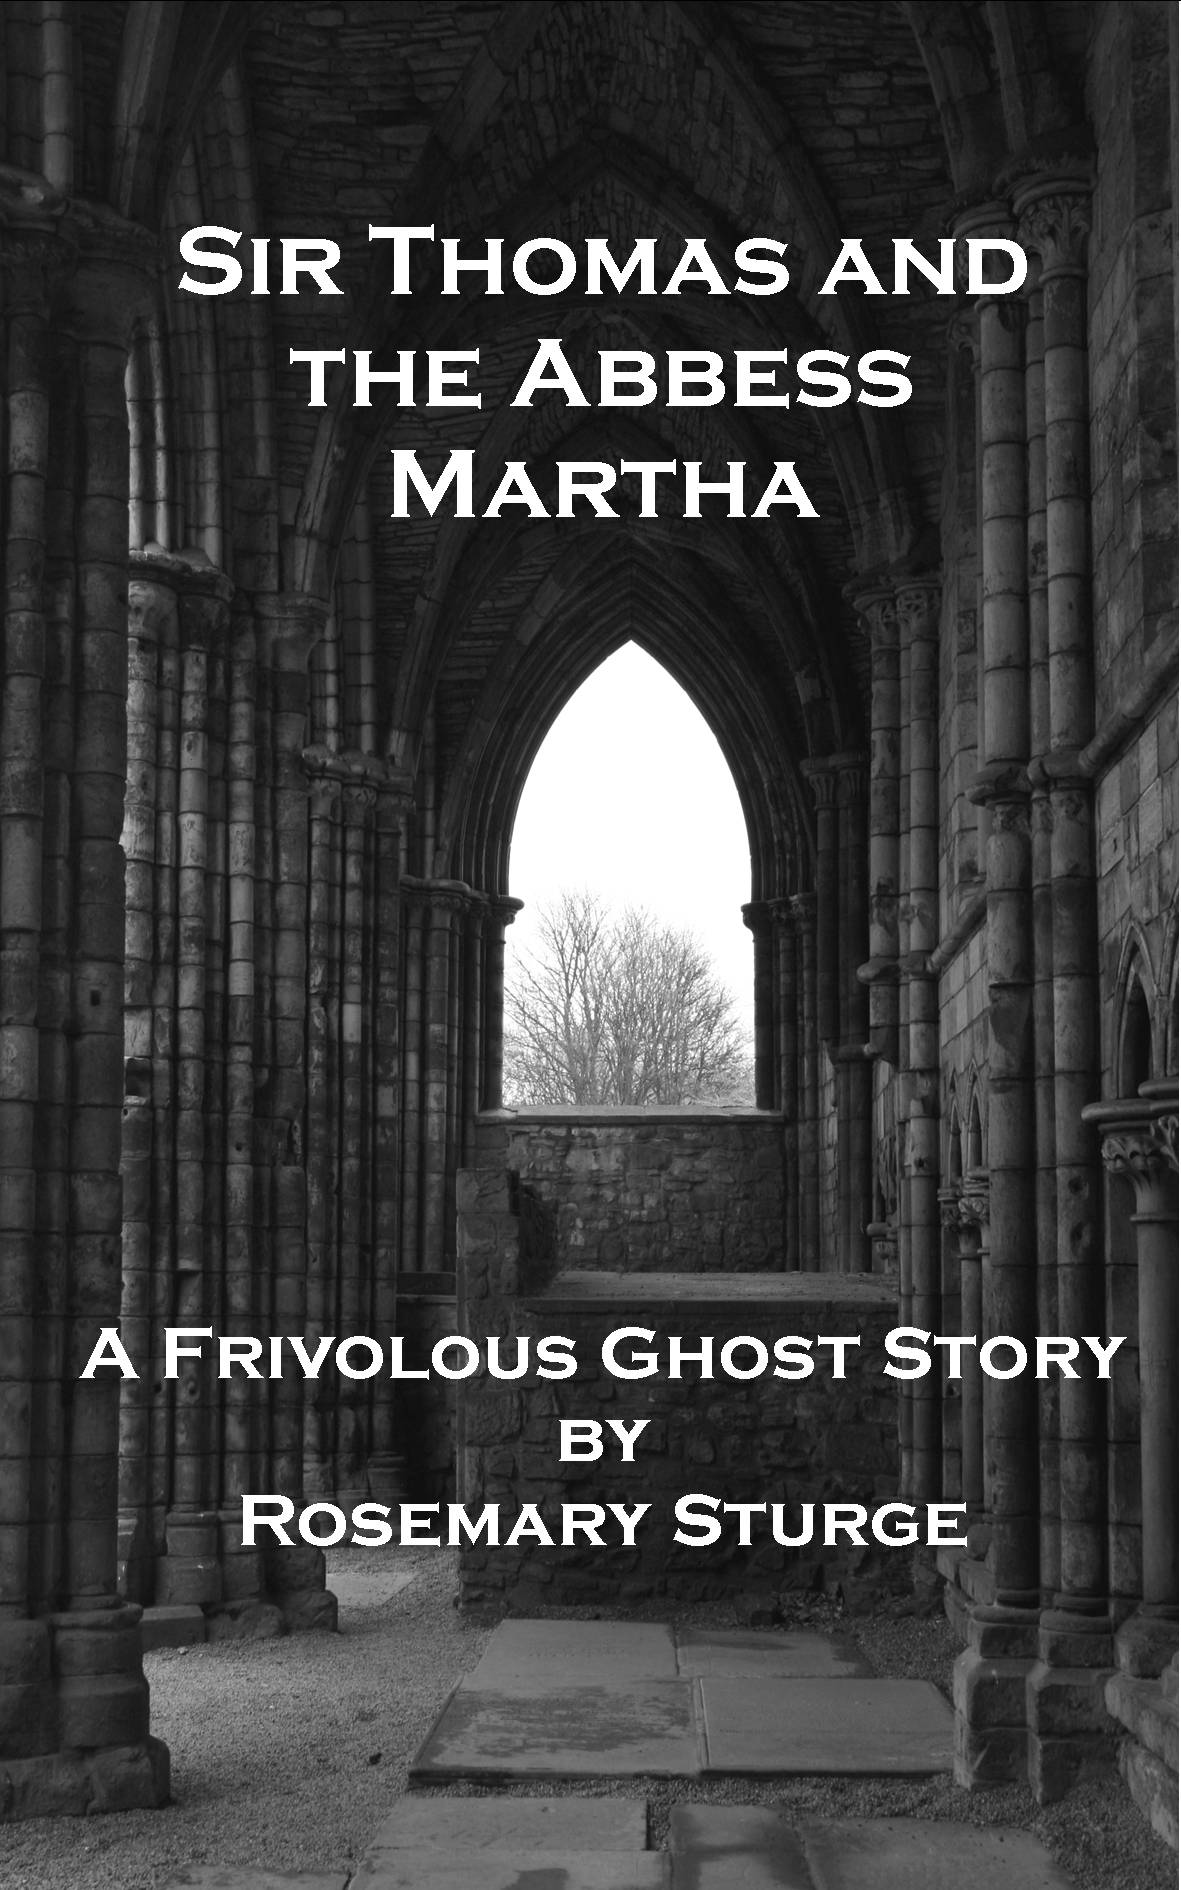 Sir Thomas and Abbess Martha book cover